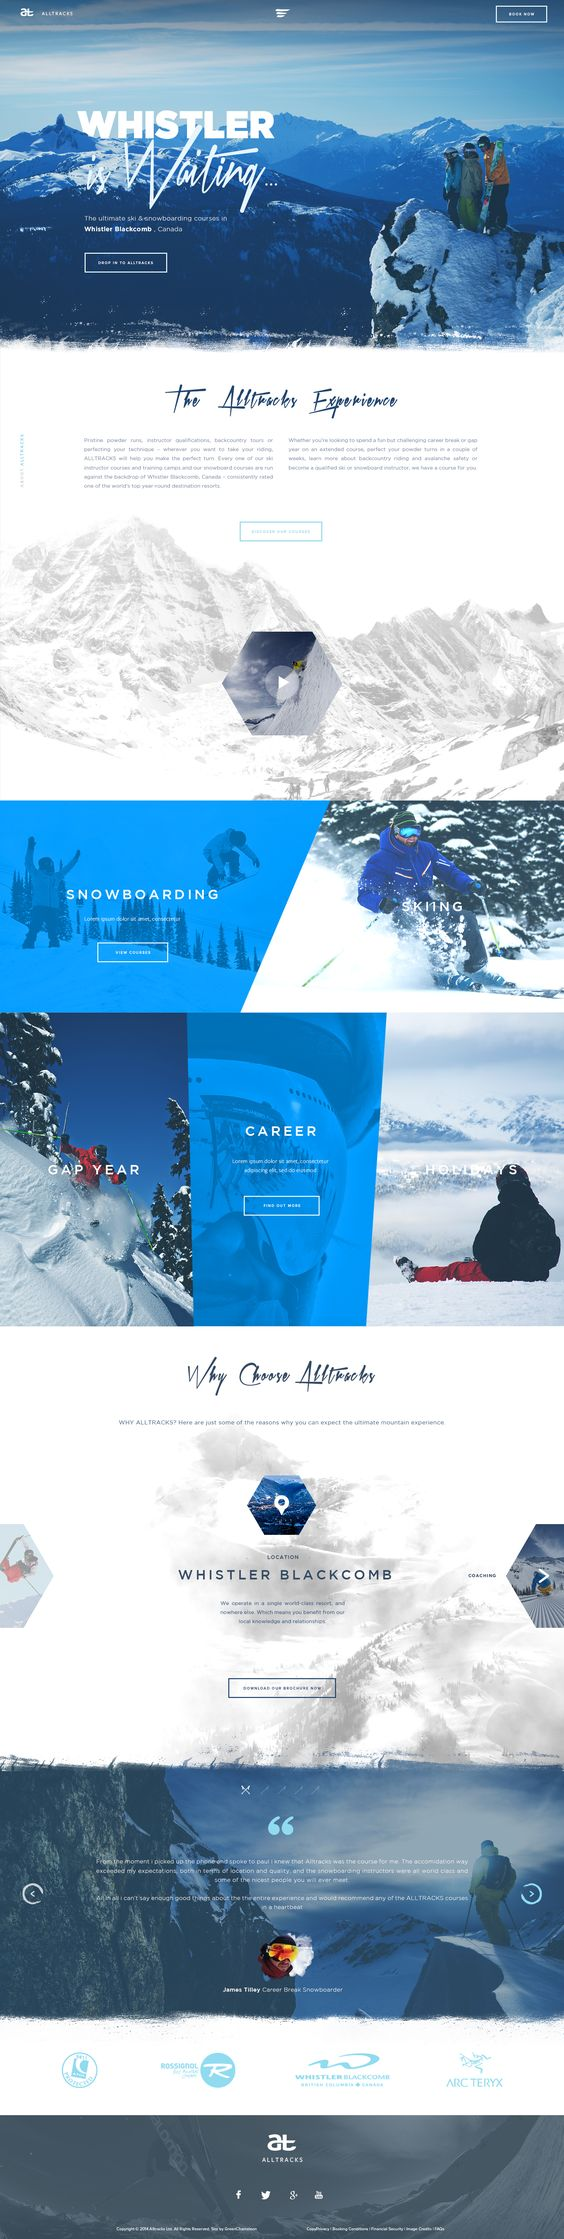 Web Design Inspiration # 1020